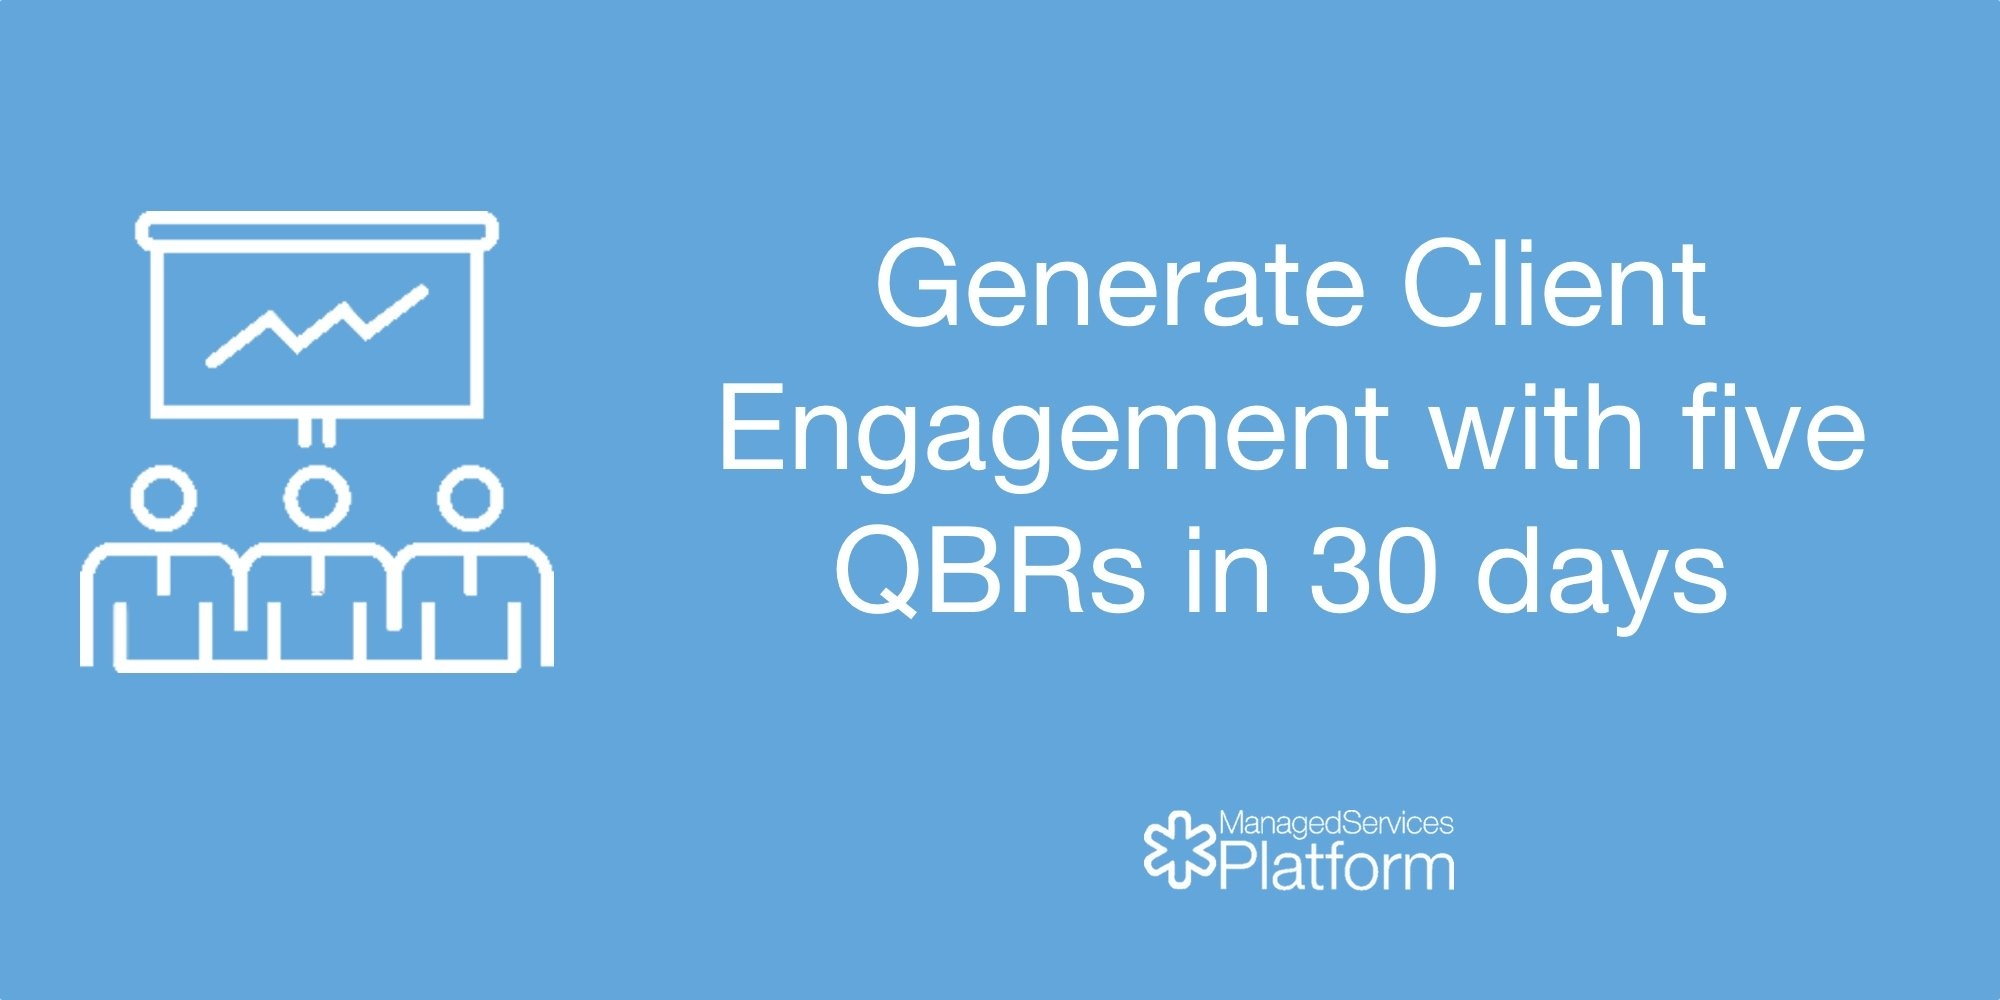 Generate Client Engagement with five QBRs in 30 days